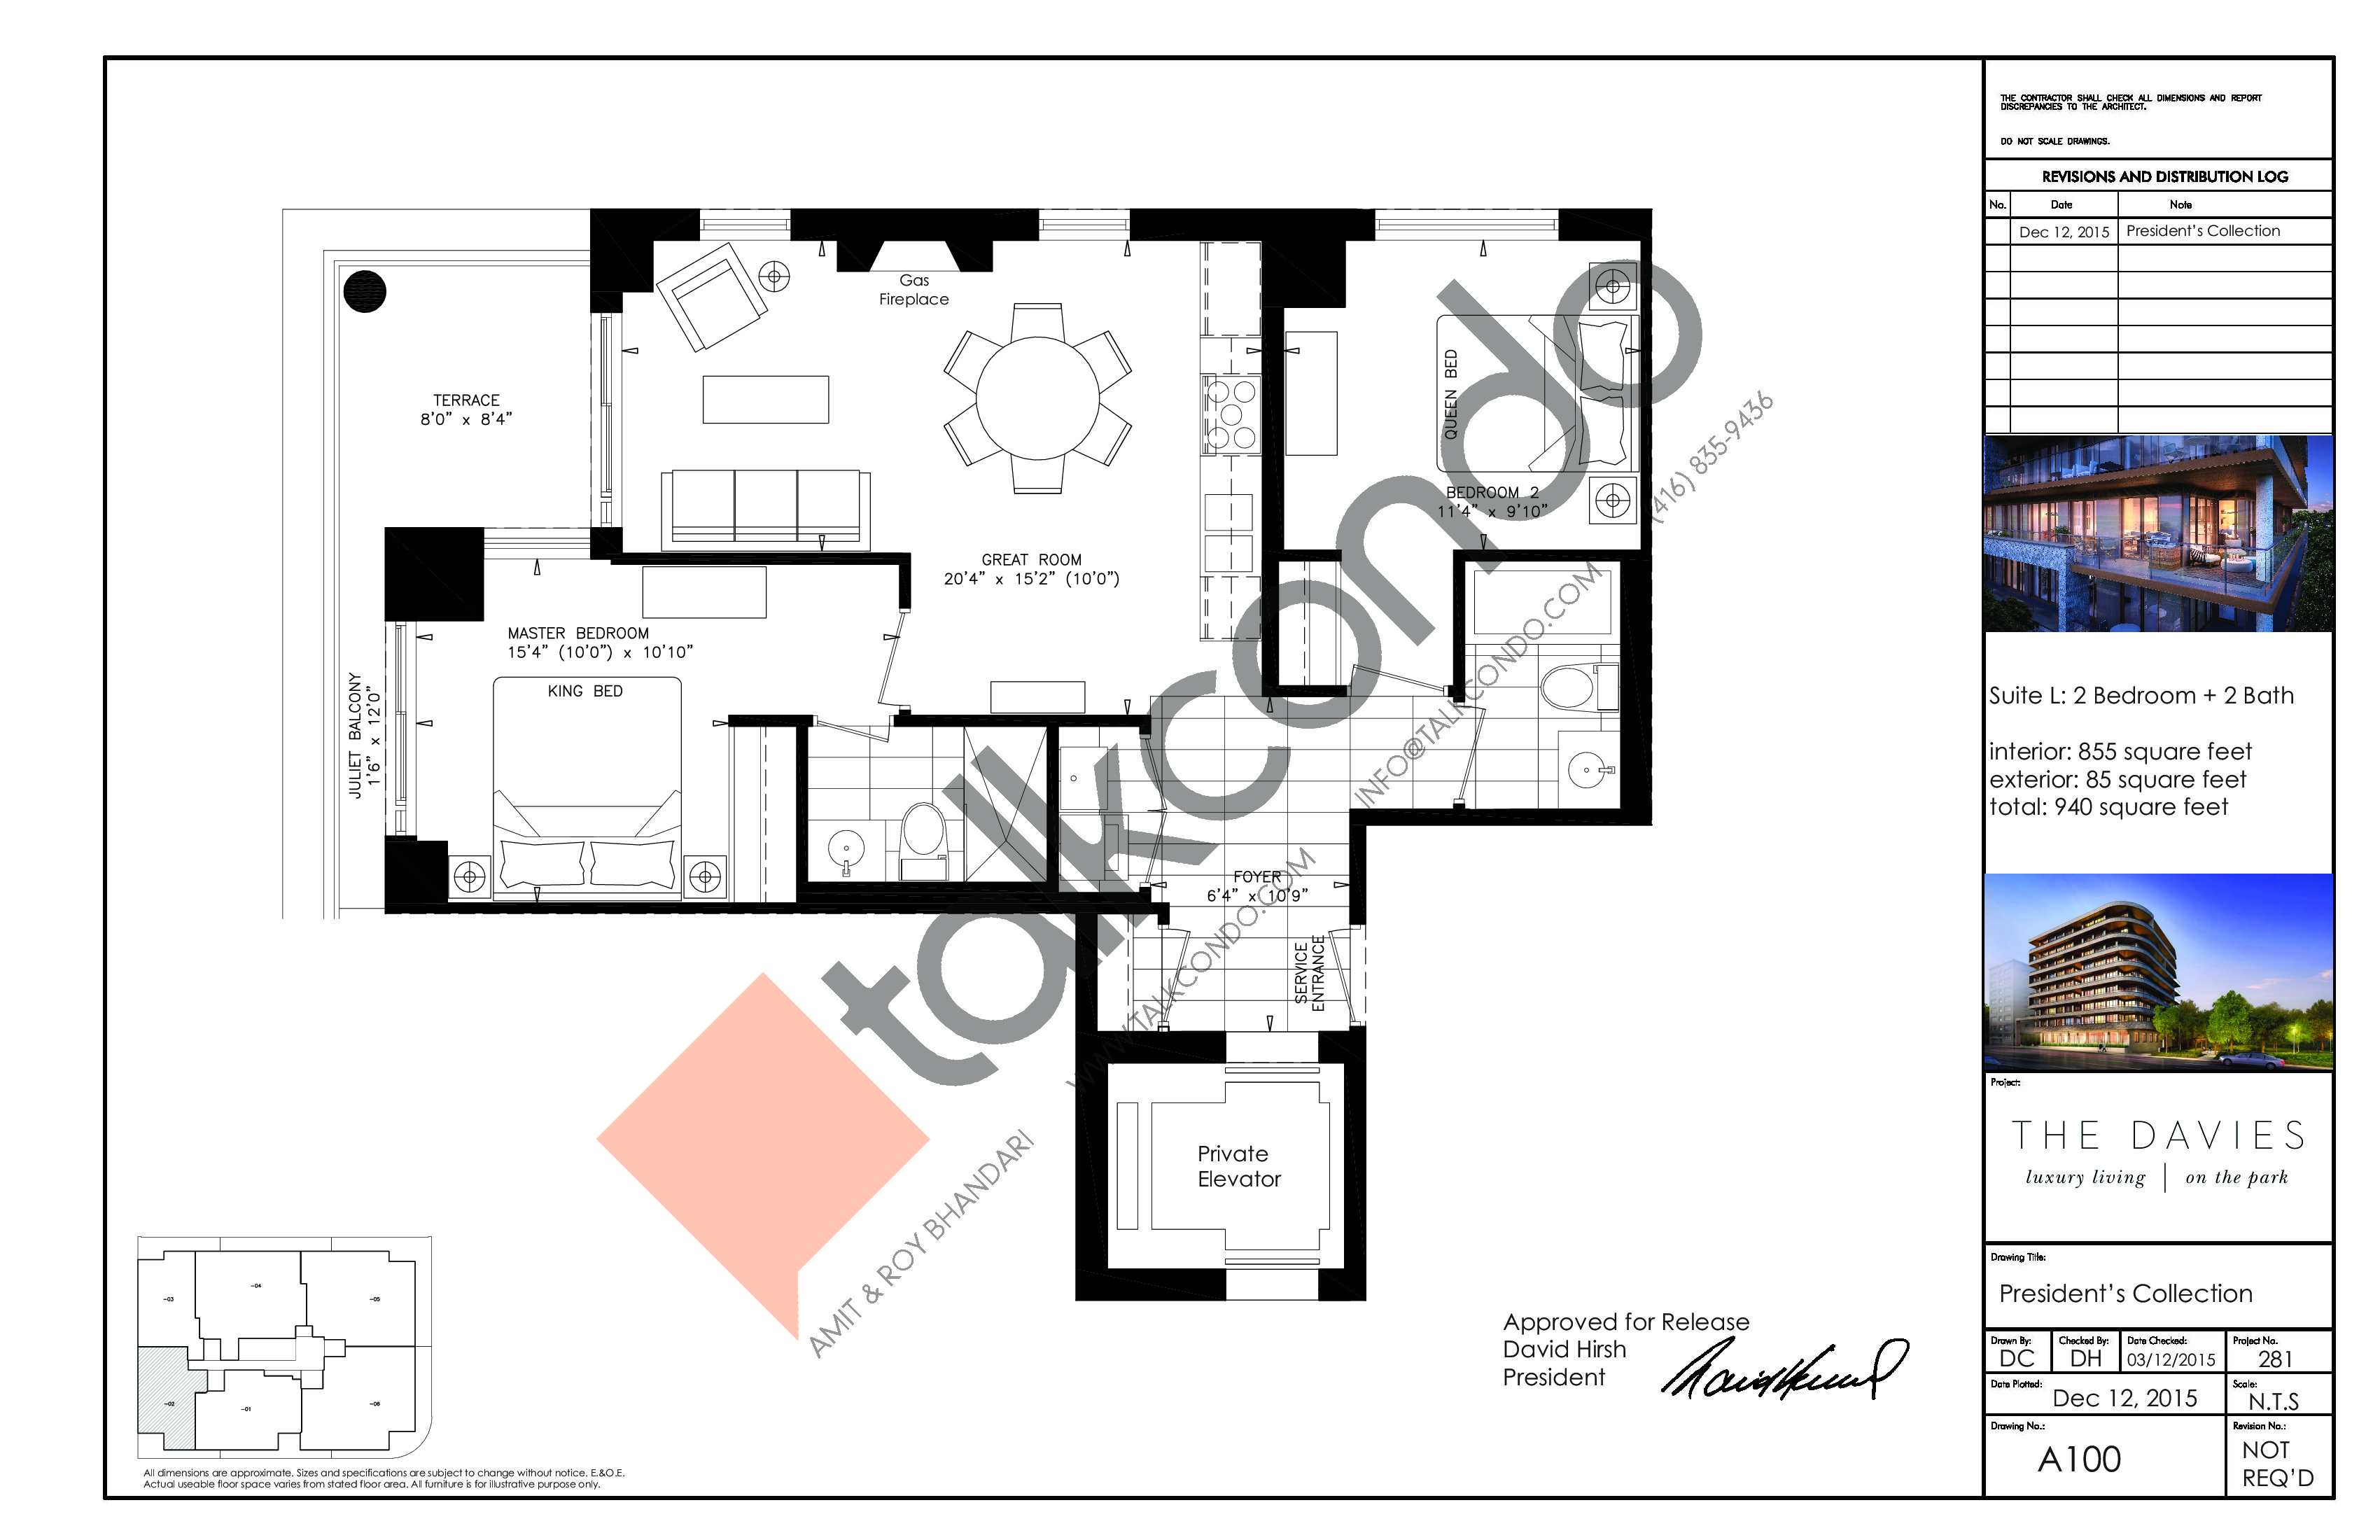 Suite L Floor Plan at The Davies - 855 sq.ft